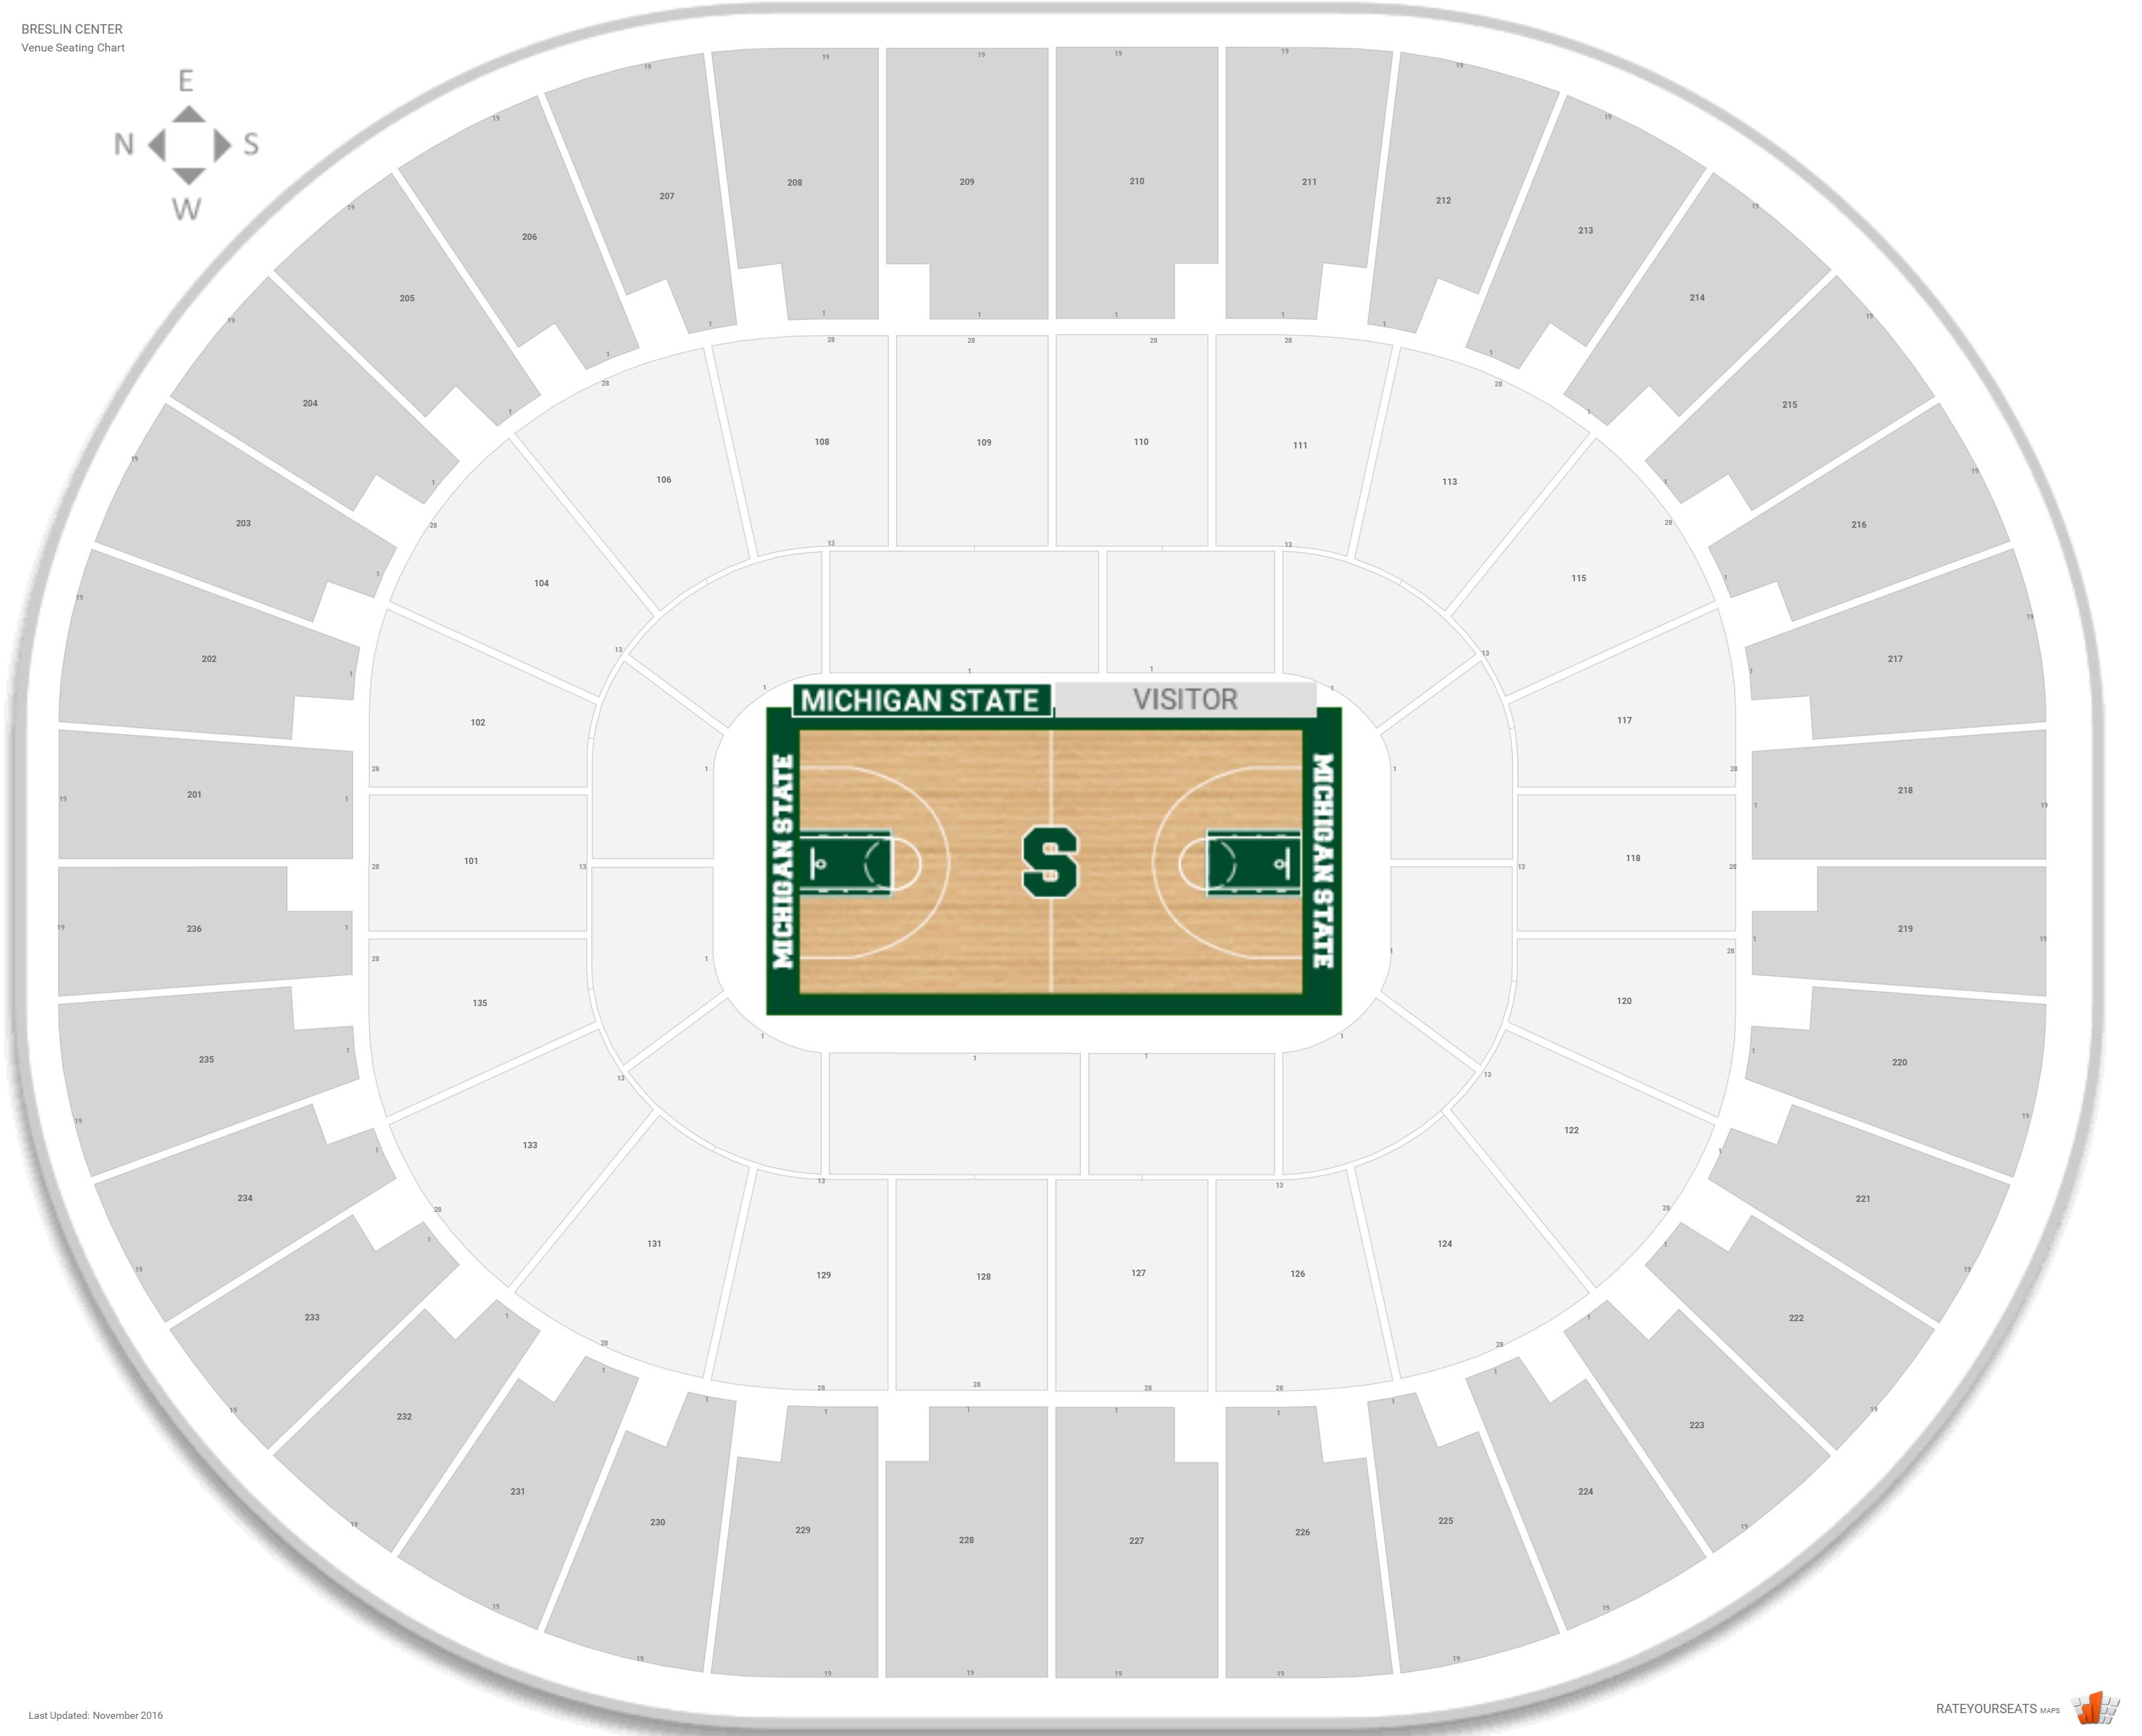 Breslin Center Seating Chart With Row Numbers